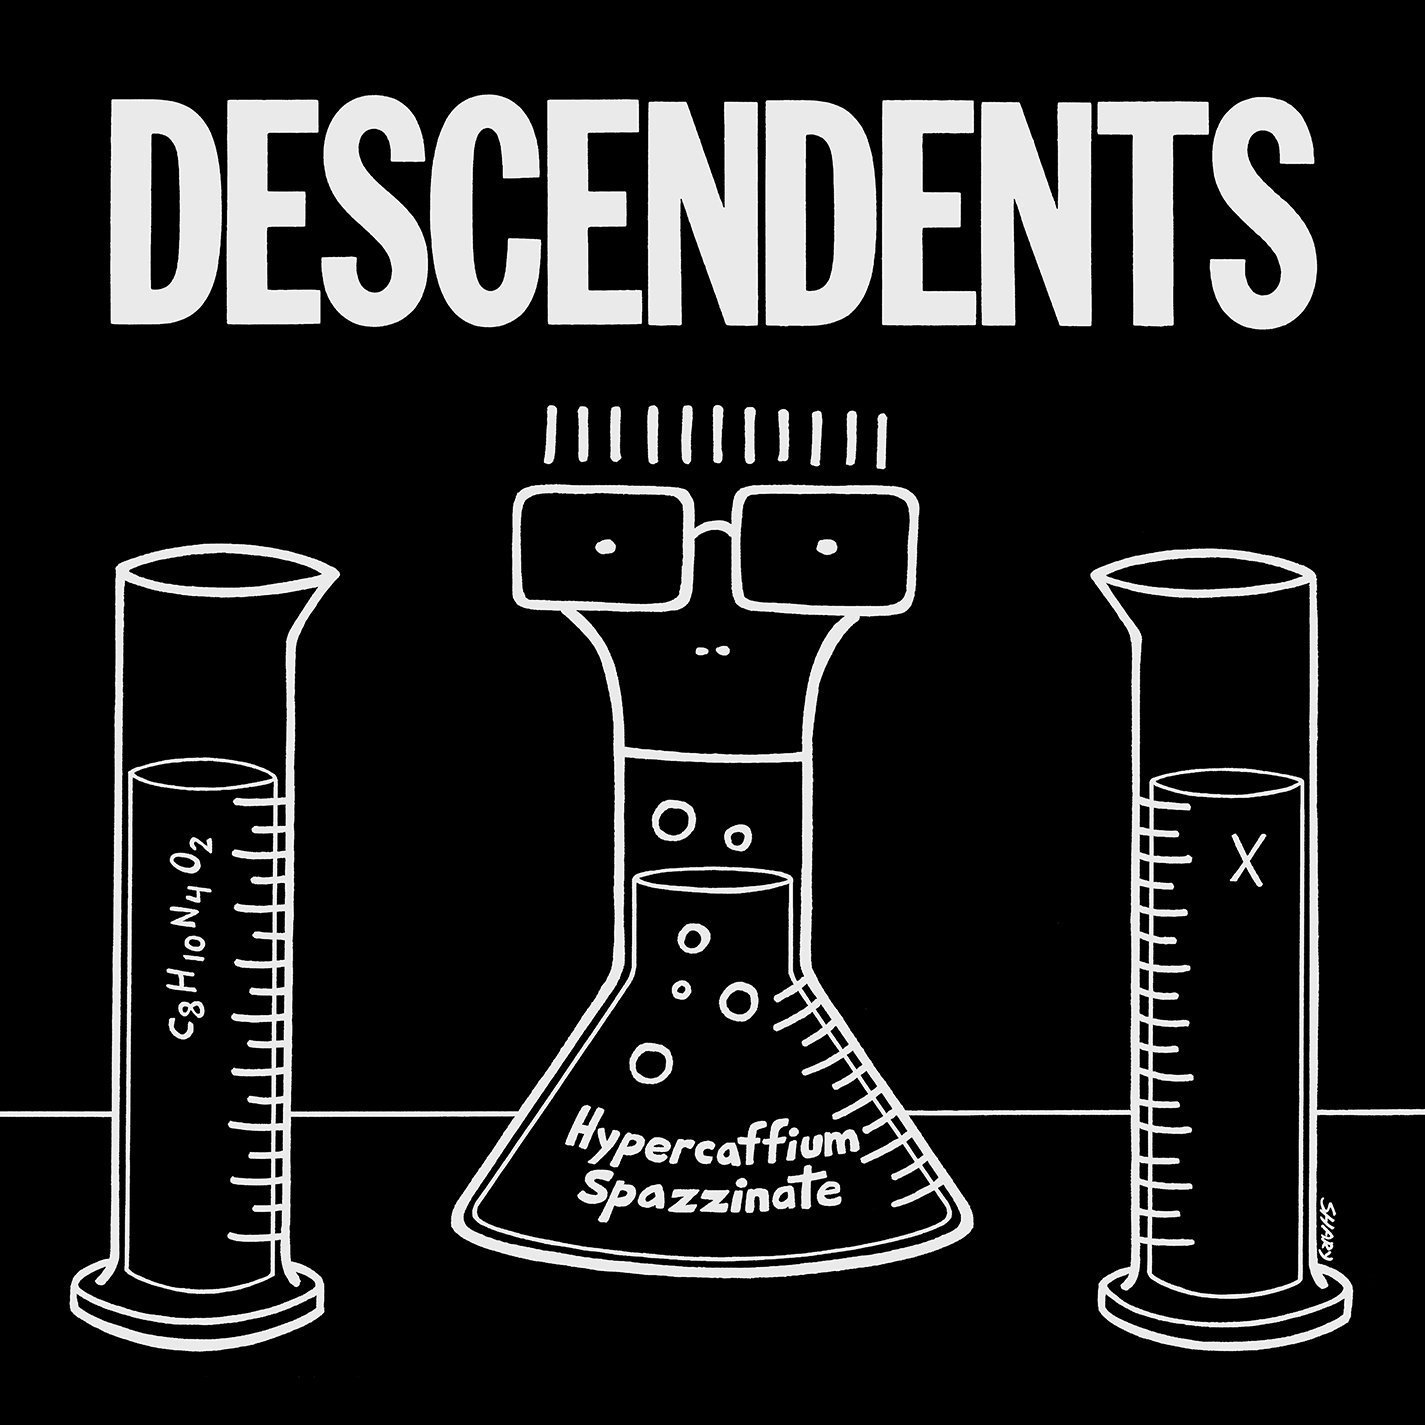 Descendents - Hypercaffium Spazzinate